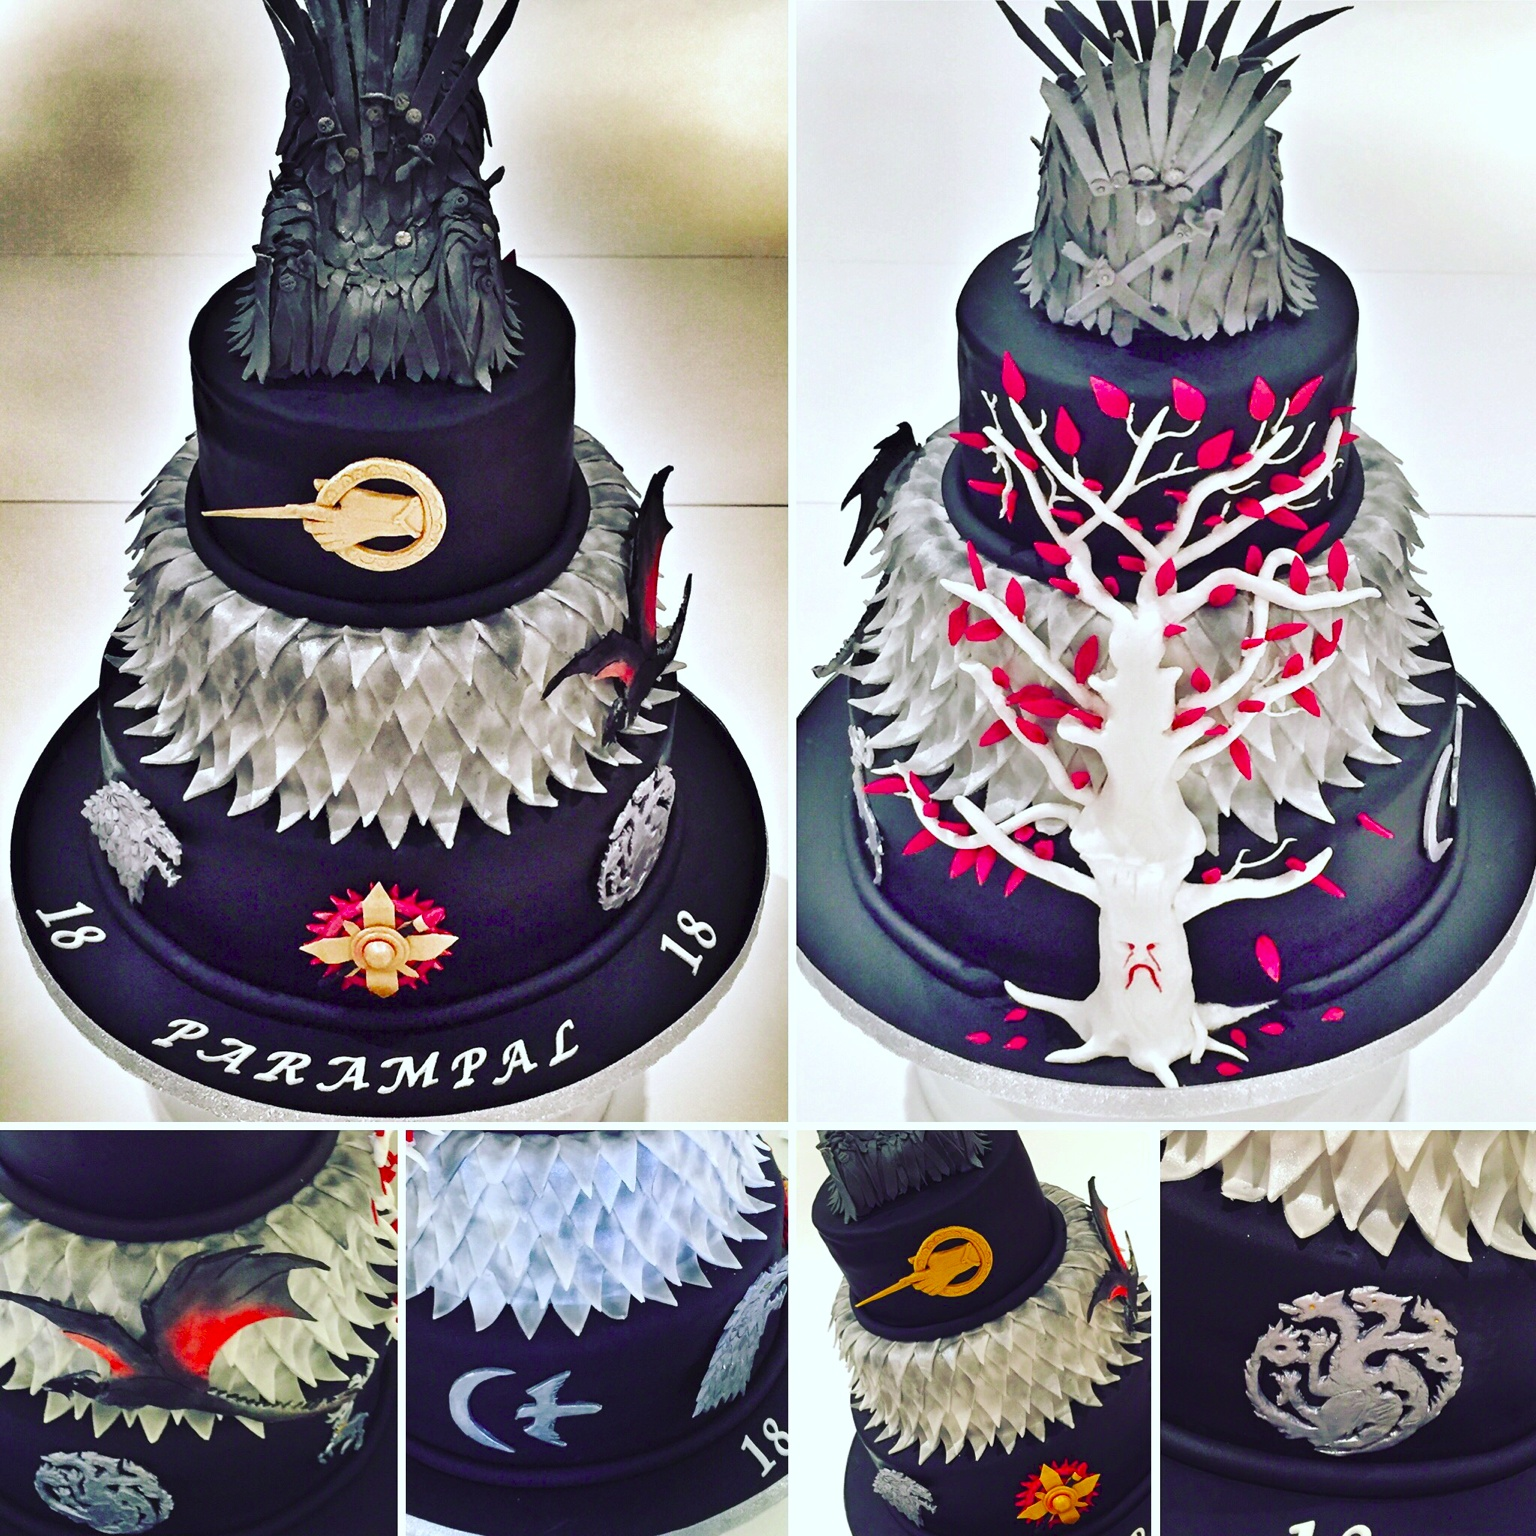 Magnificent Game Of Thrones Cakes Cakeflix Funny Birthday Cards Online Overcheapnameinfo